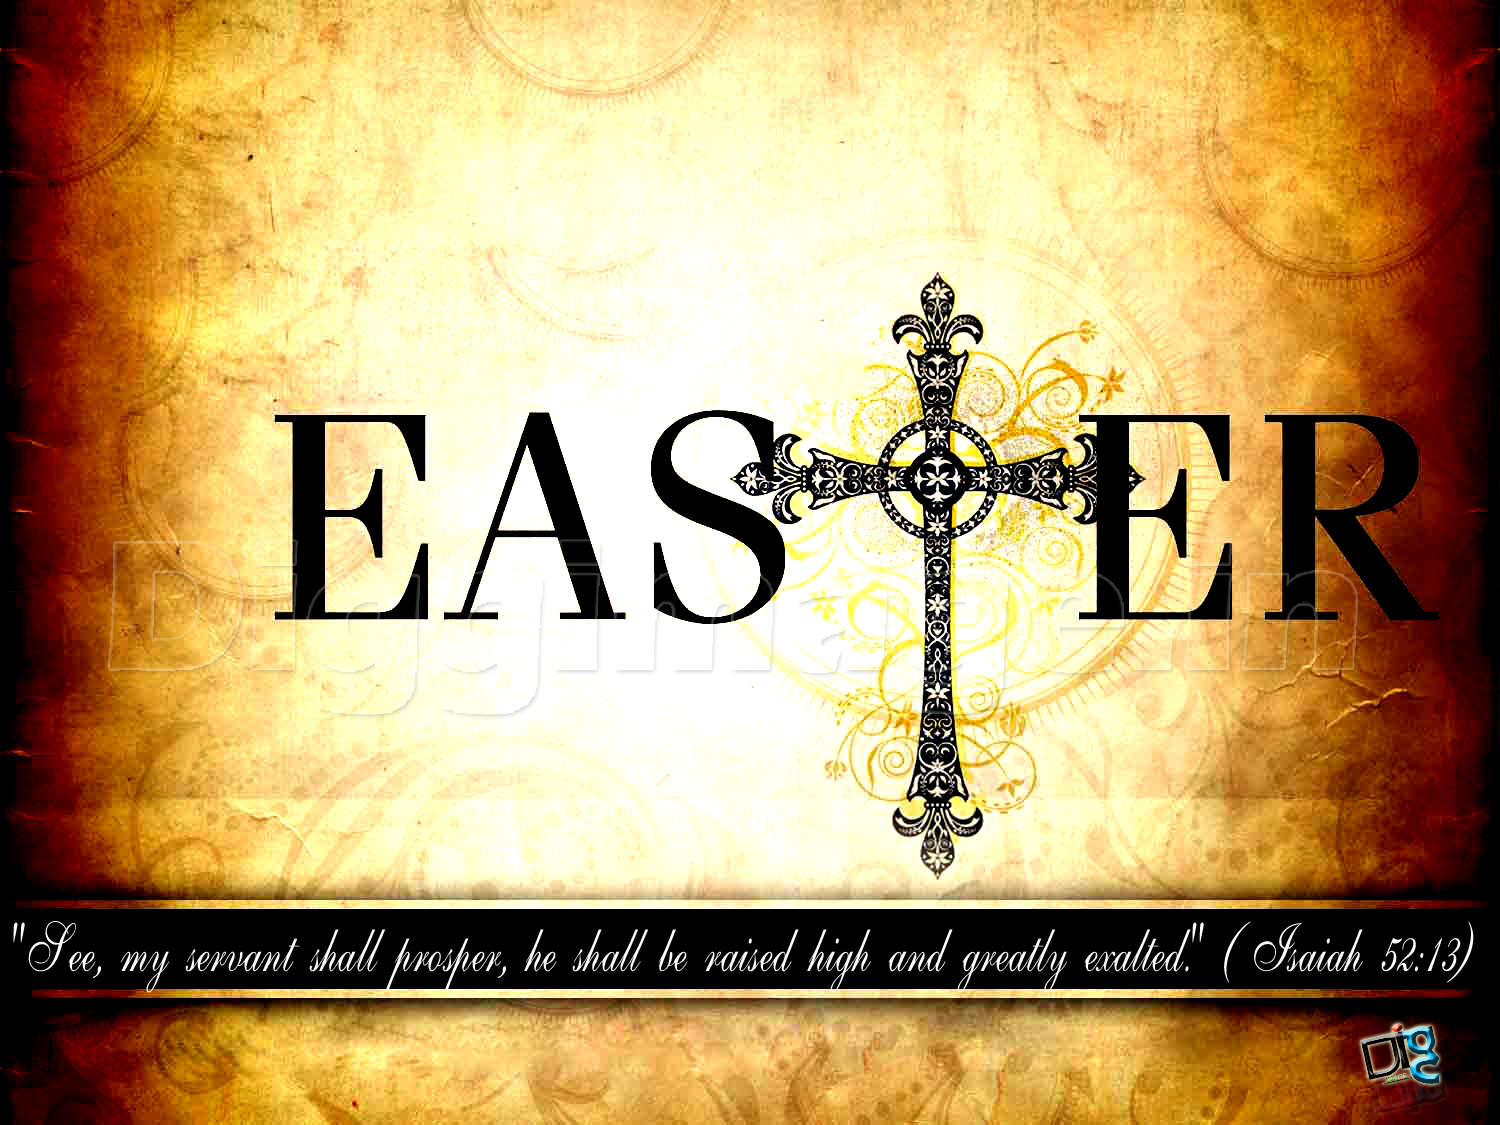 Happy Easter Religious Easter greetings and wishes